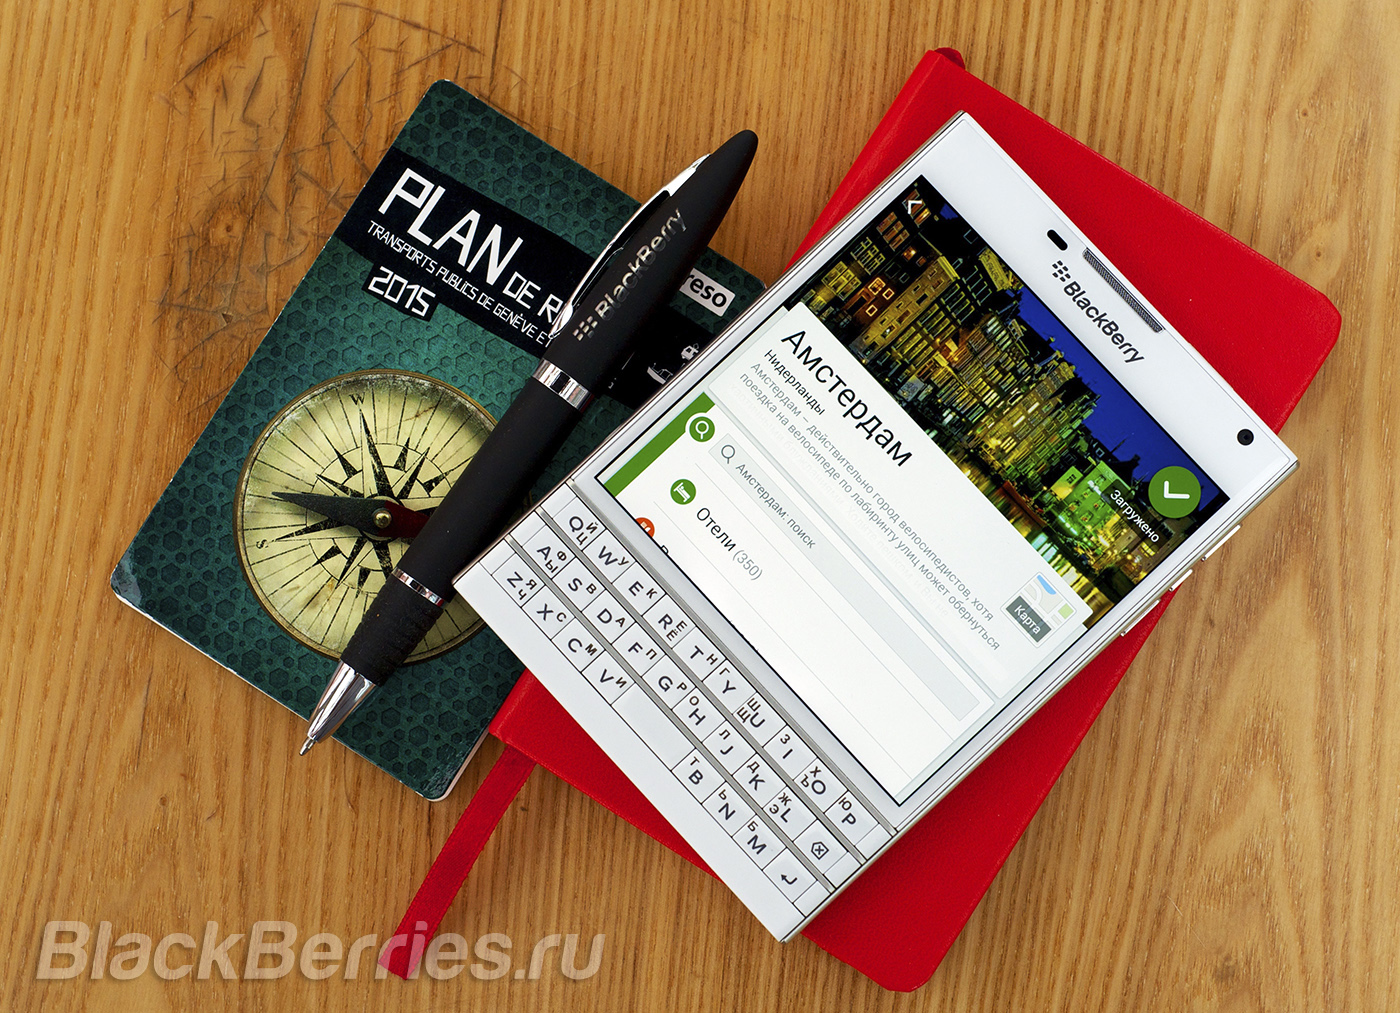 BlackBerry-Passport-App-23-05-11